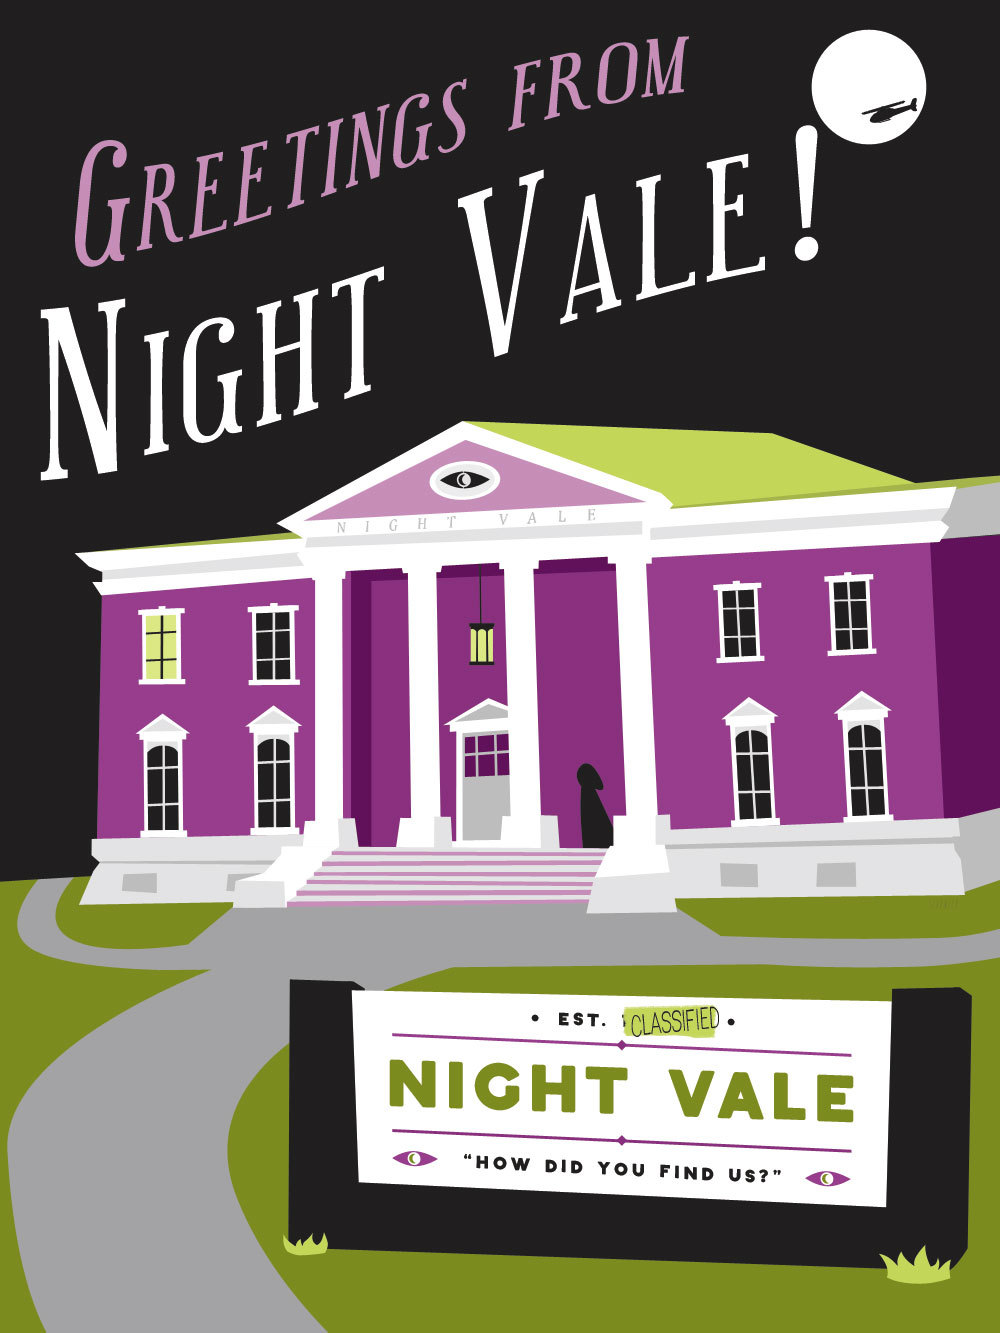 Night Vale is not so easily found.